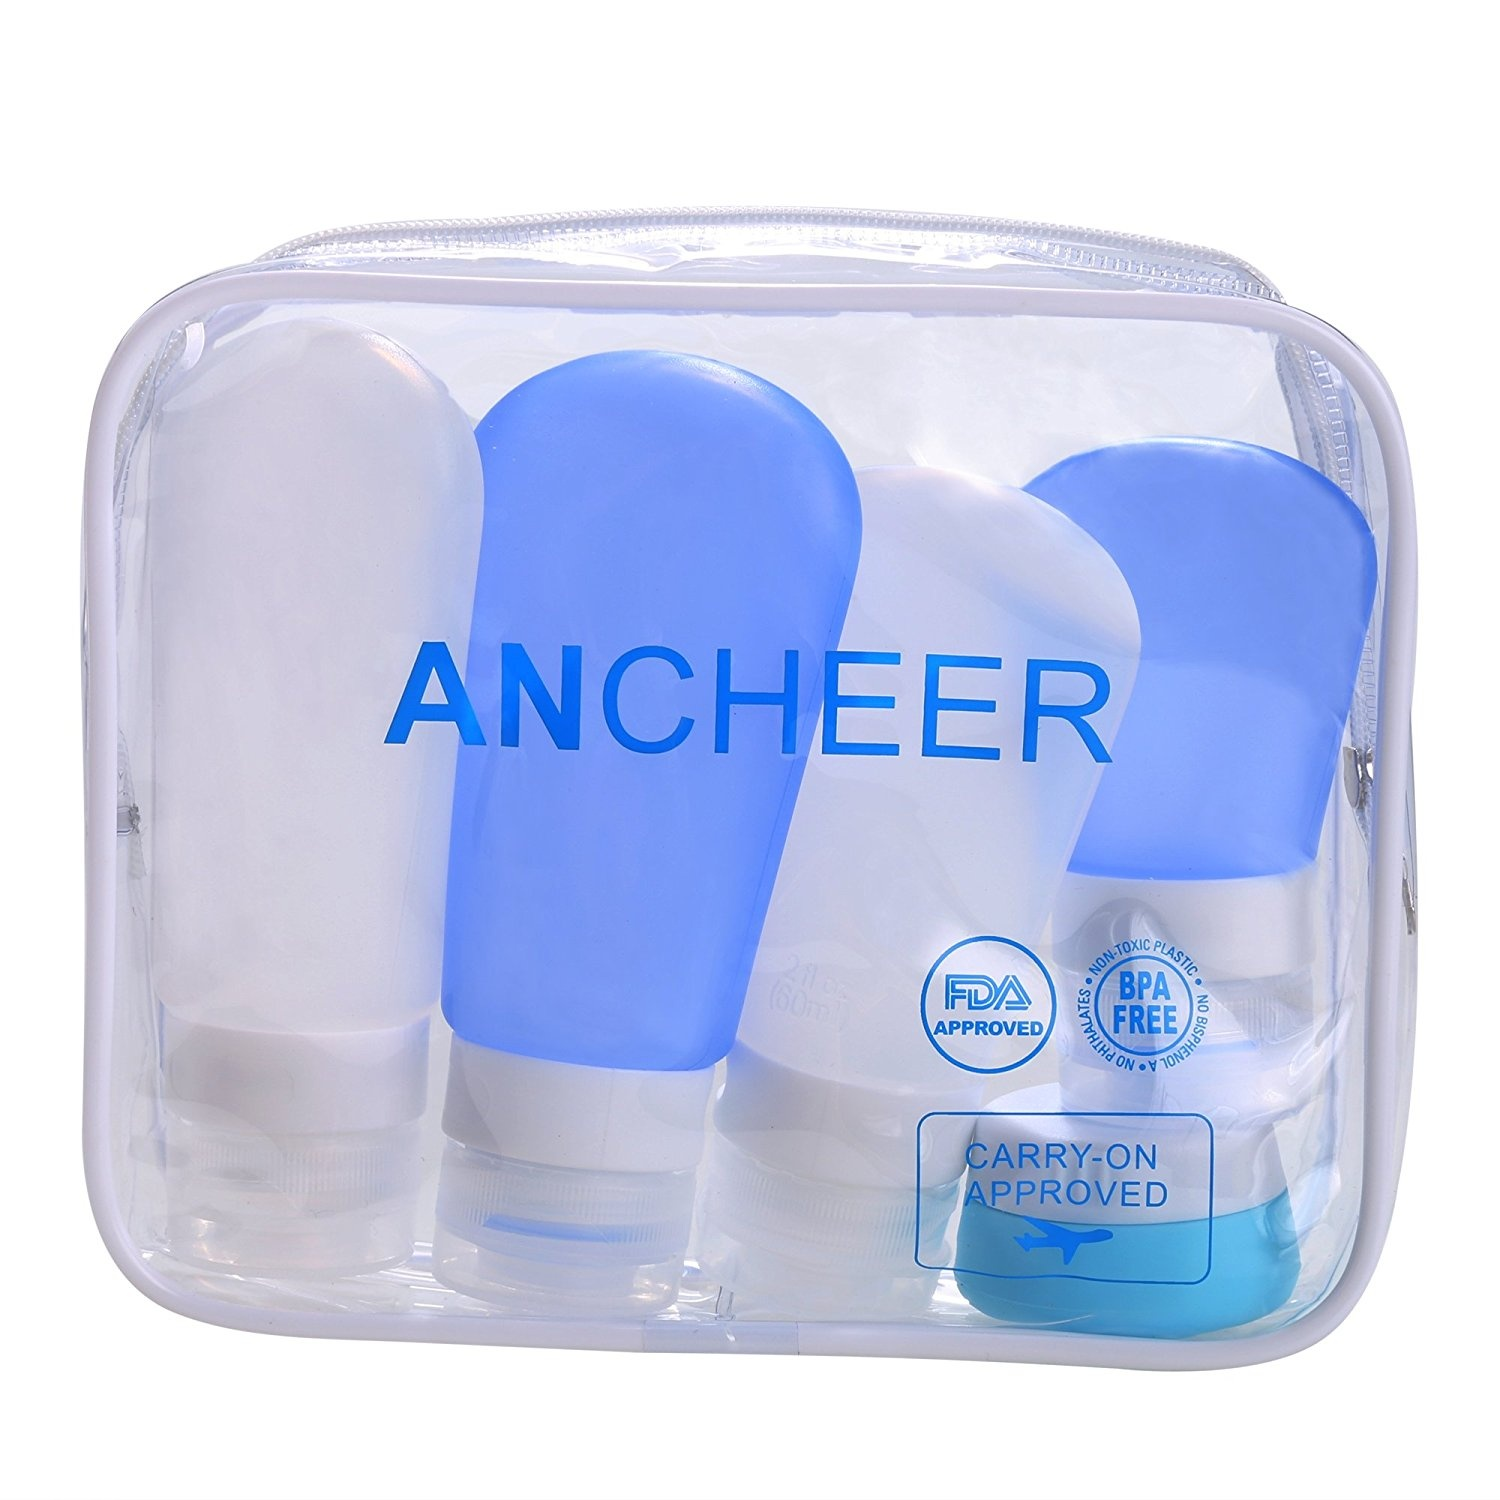 Ancheer Silicone Travel Bottles Set Pack of 5 Leak Proof Container with 1  Cream Jar in EVA Carry Bag for Shampoo 5ab29572992f7